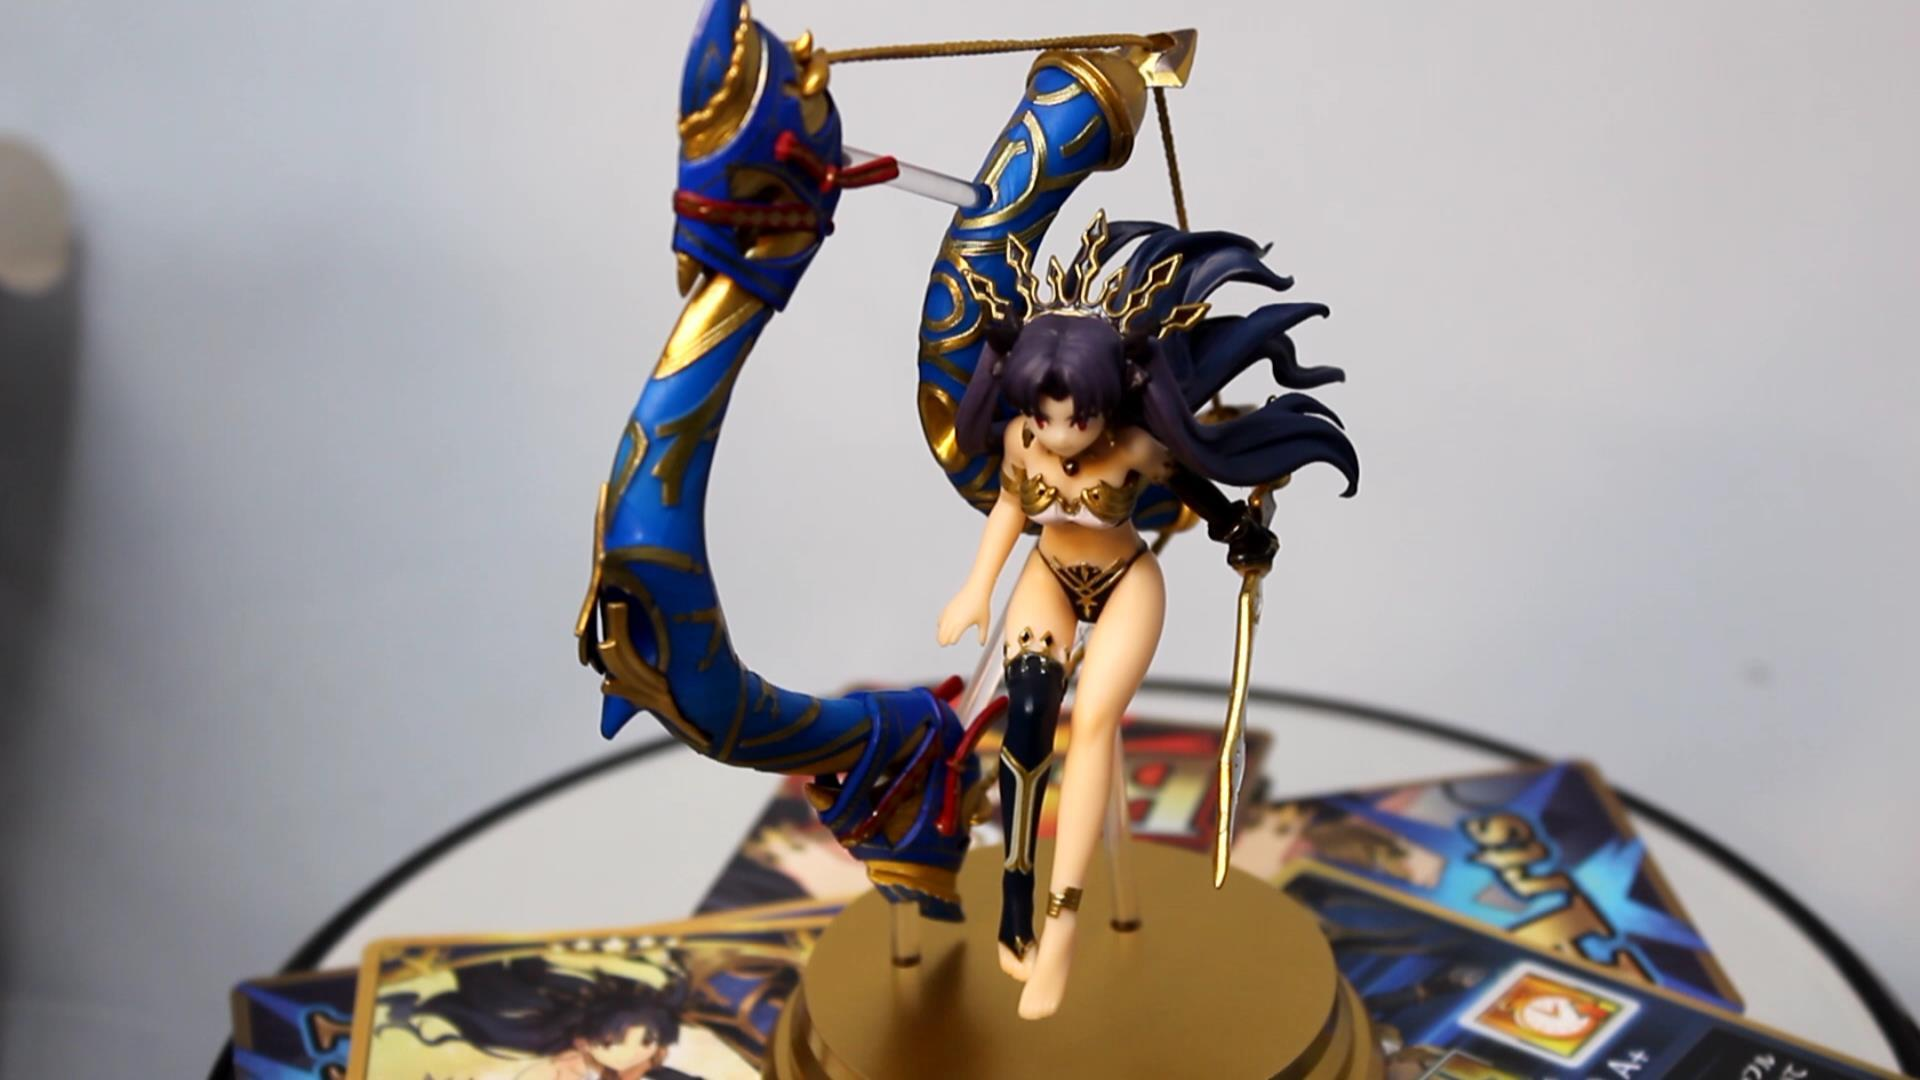 [Fate/Grand Order] Duel collection figure Vol.10 review(Unboxing ANIPLEX+) 絶対魔獣戦線バビロニアエレシュキガル イシュタル_e0251890_11300205.jpg